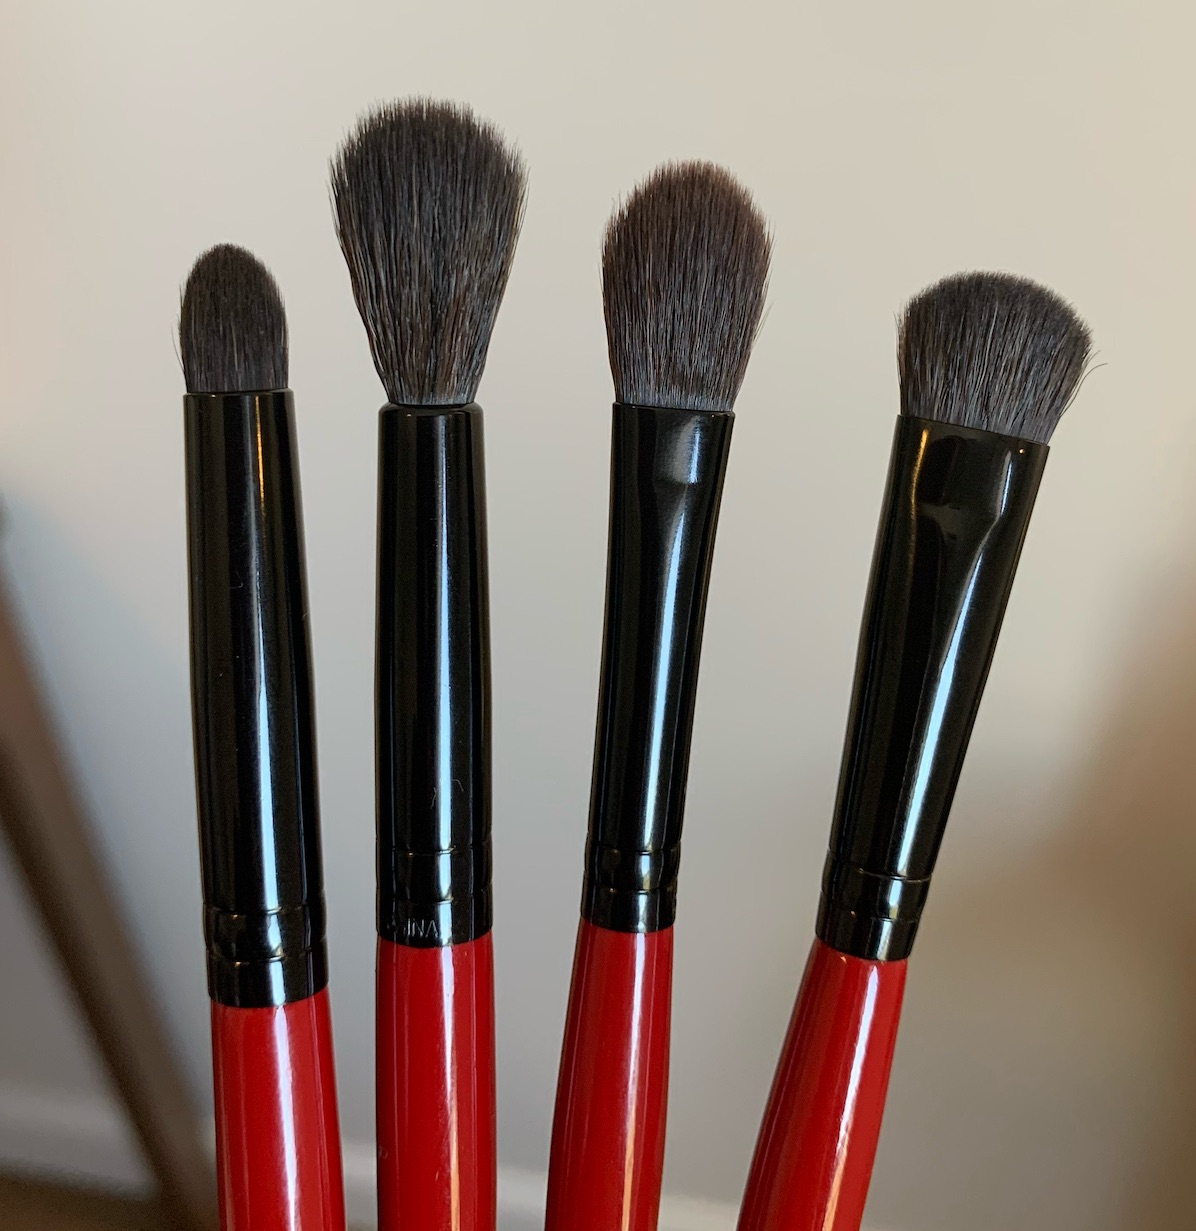 Smashbox Eyeshadow Brushes Review (Smoky Shadow, Shadow Blending, Contour Shadow, and Full Coverage Shadow)